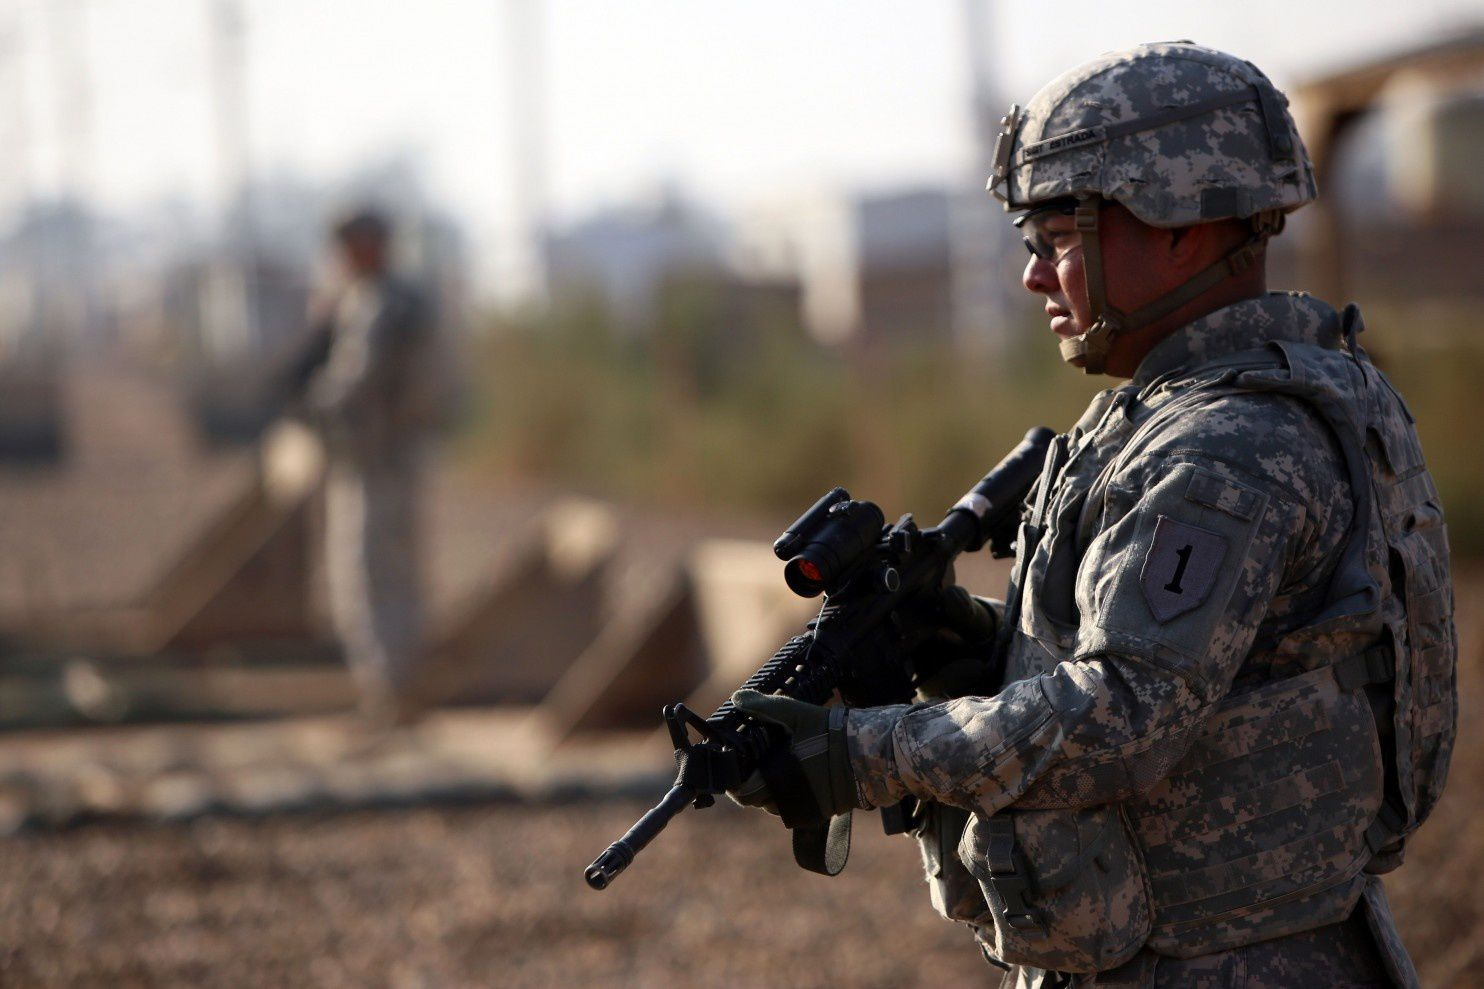 U.S. advisers in Iraq stay out of combat but see fighting edging closer